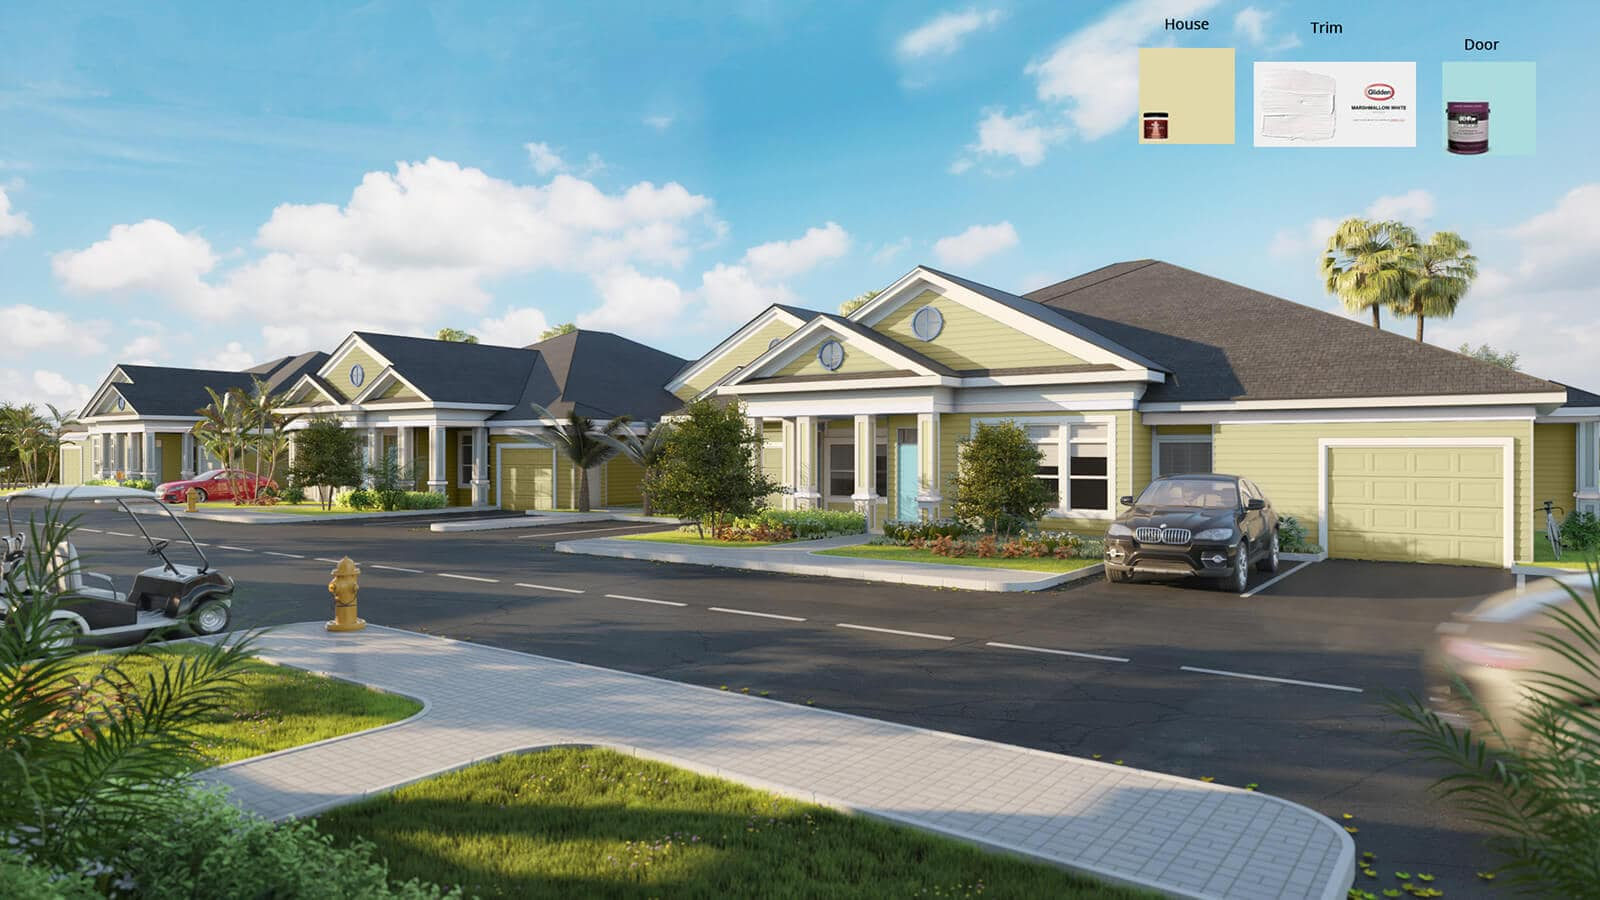 Floridian Villa Color Set A. 3D rendering for testing housing, trim and door colors.